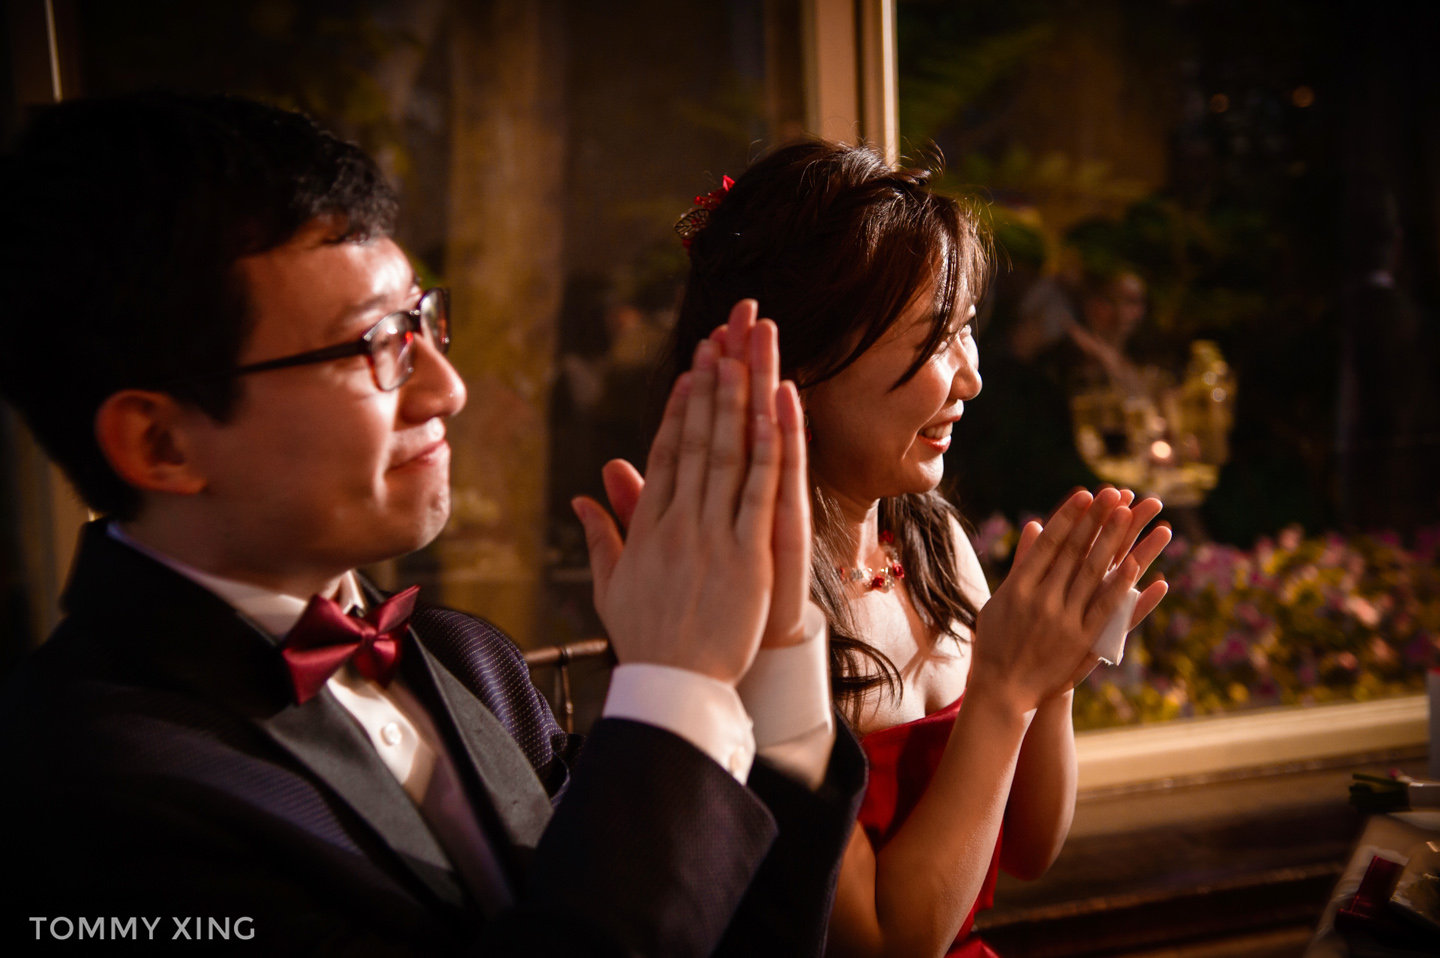 Los Angeles Wedding Photographer 洛杉矶婚礼婚纱摄影师 Tommy Xing-234.JPG